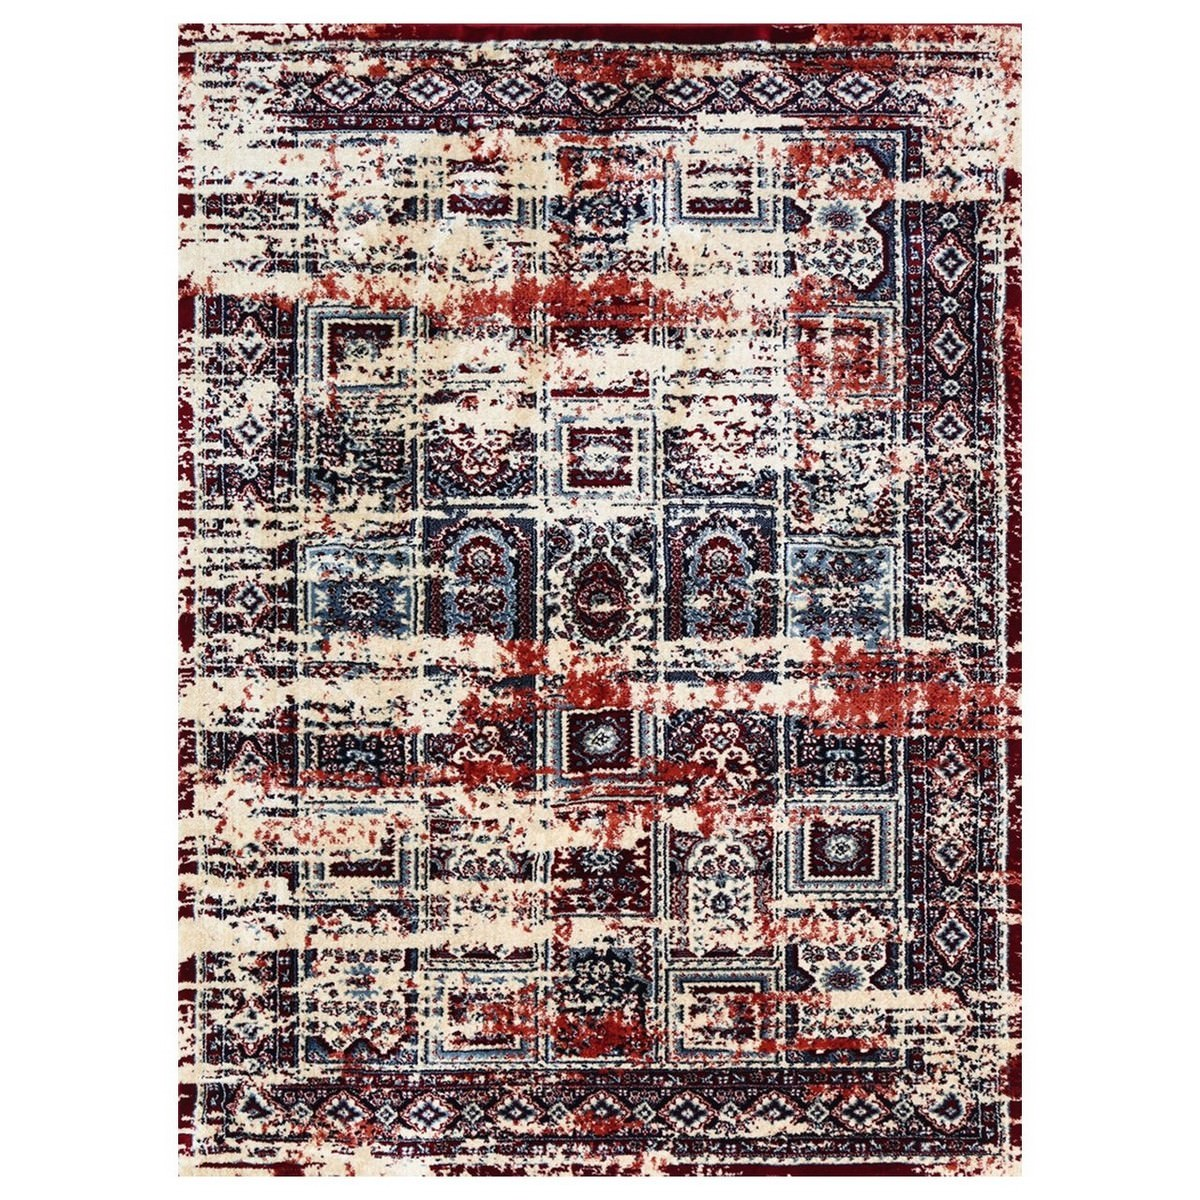 Artifact Gazsi Distressed Oriental Rug, 160x230cm